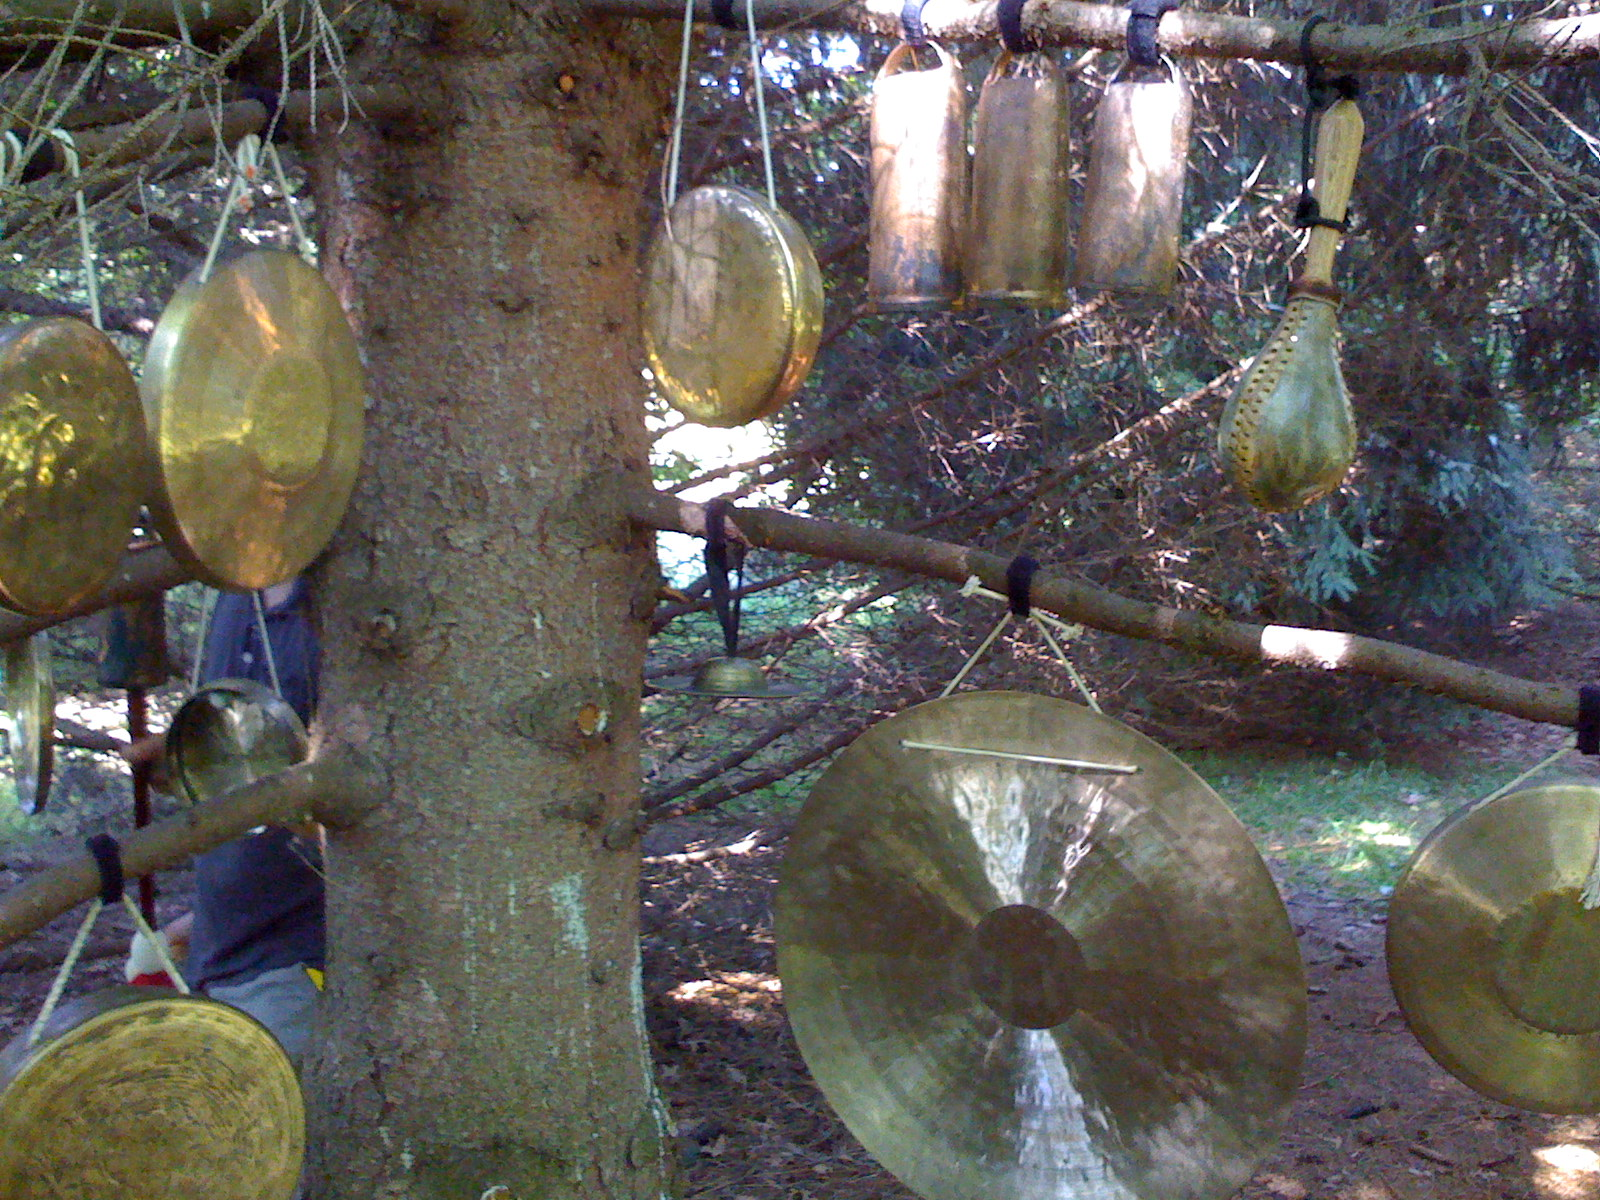 Gong trees (II) for Grain of Sand film shoot, Ravenna, OH